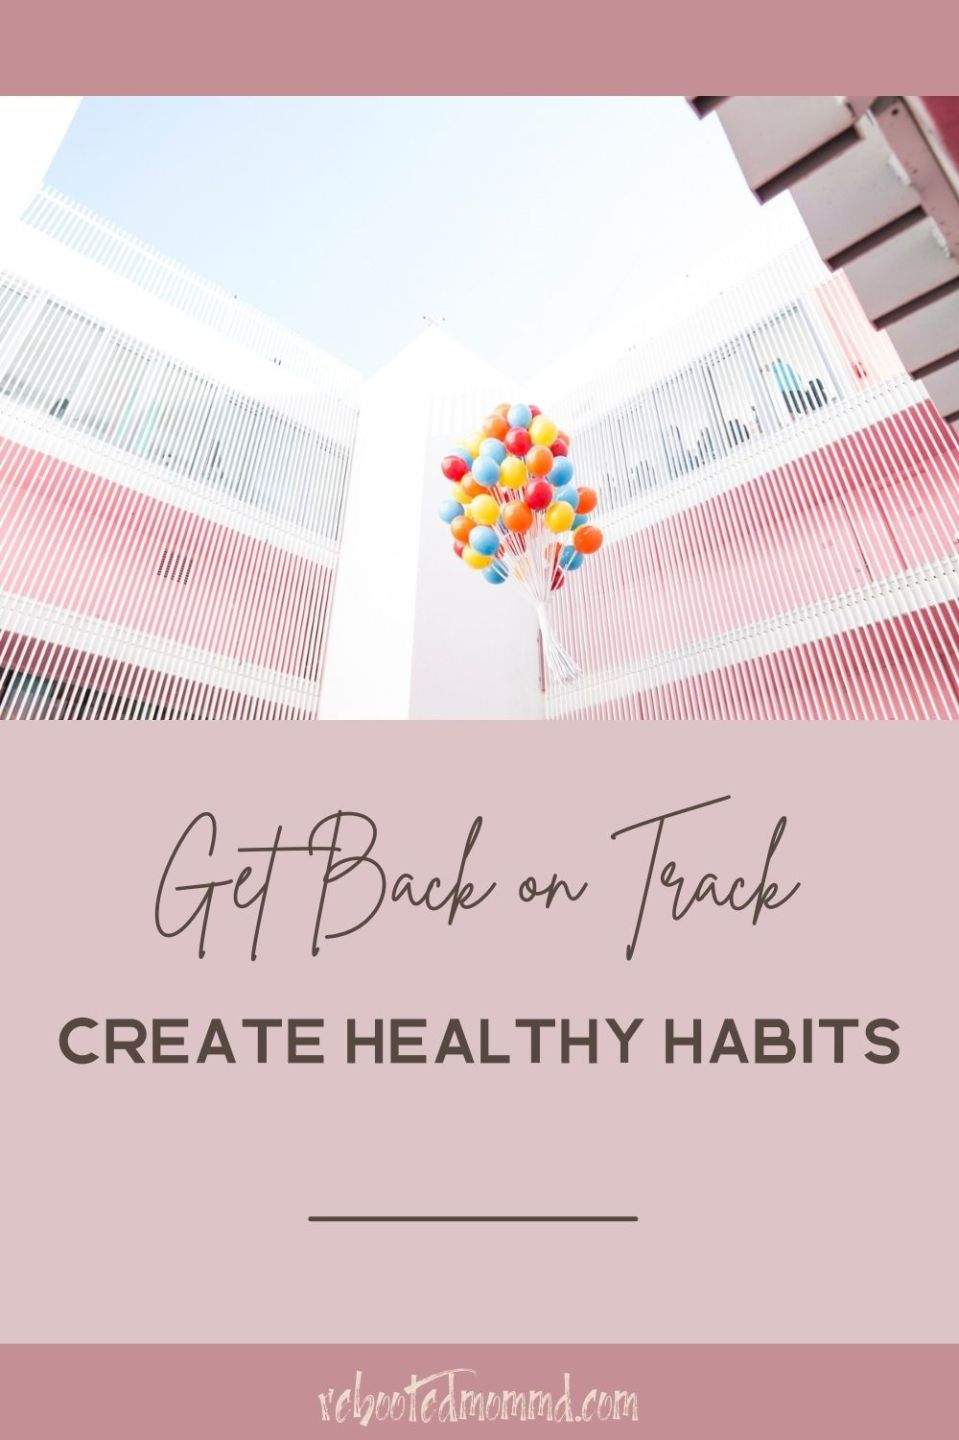 Get Back on Track: Create Healthy Habits